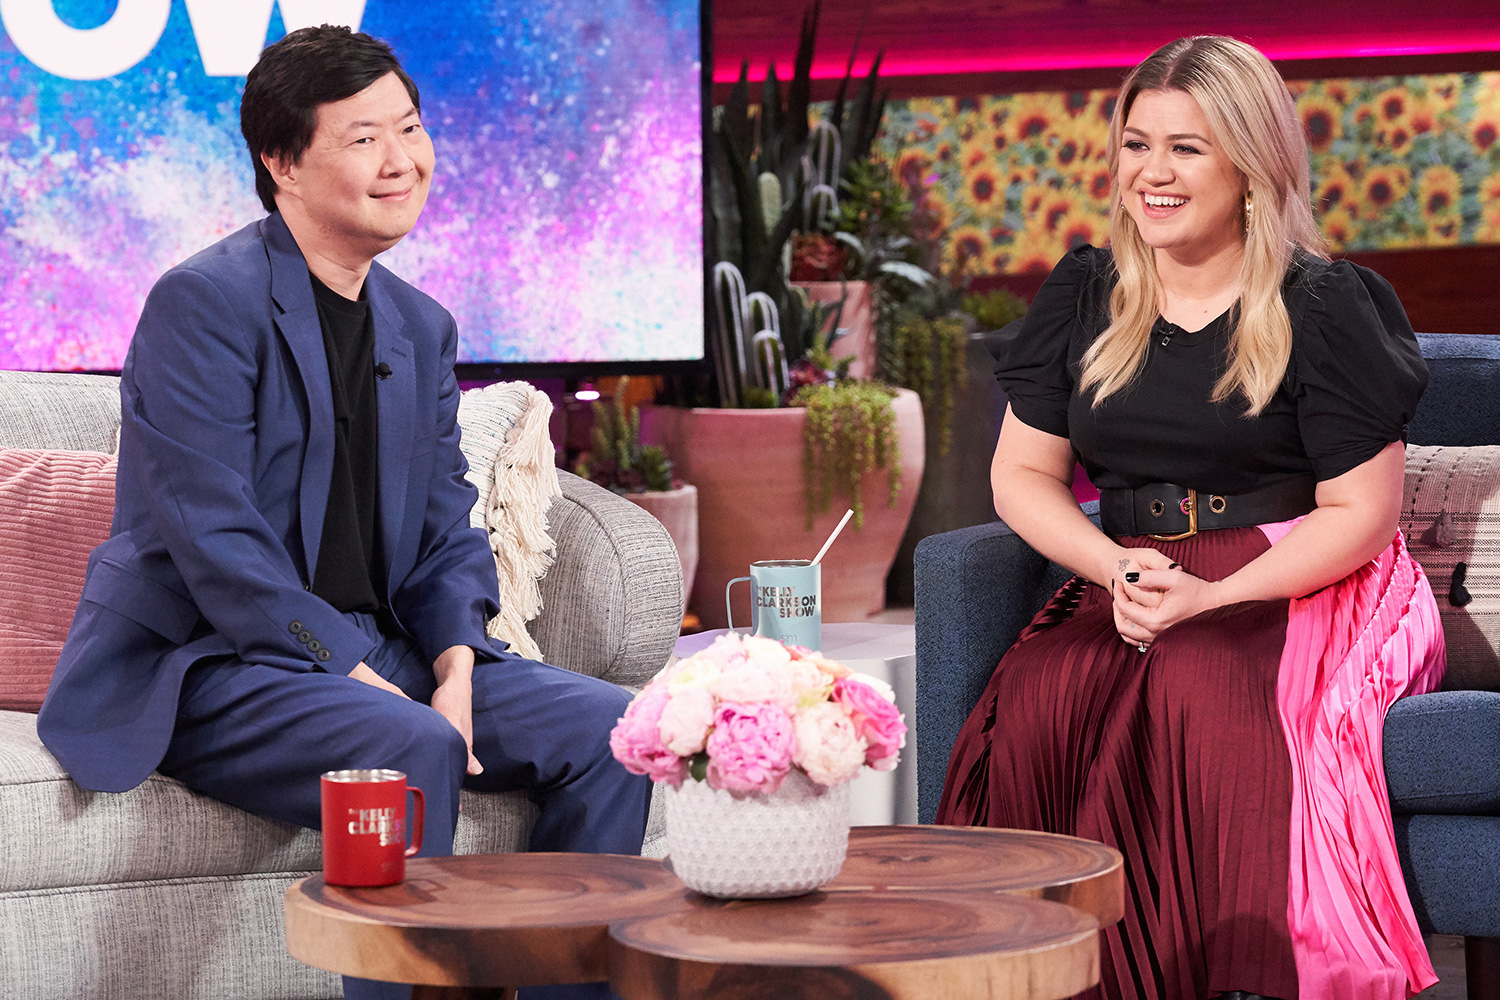 THE KELLY CLARKSON SHOW -- Episode 3112 -- Pictured: (l-r) Ken Jeong, Kelly Clarkson